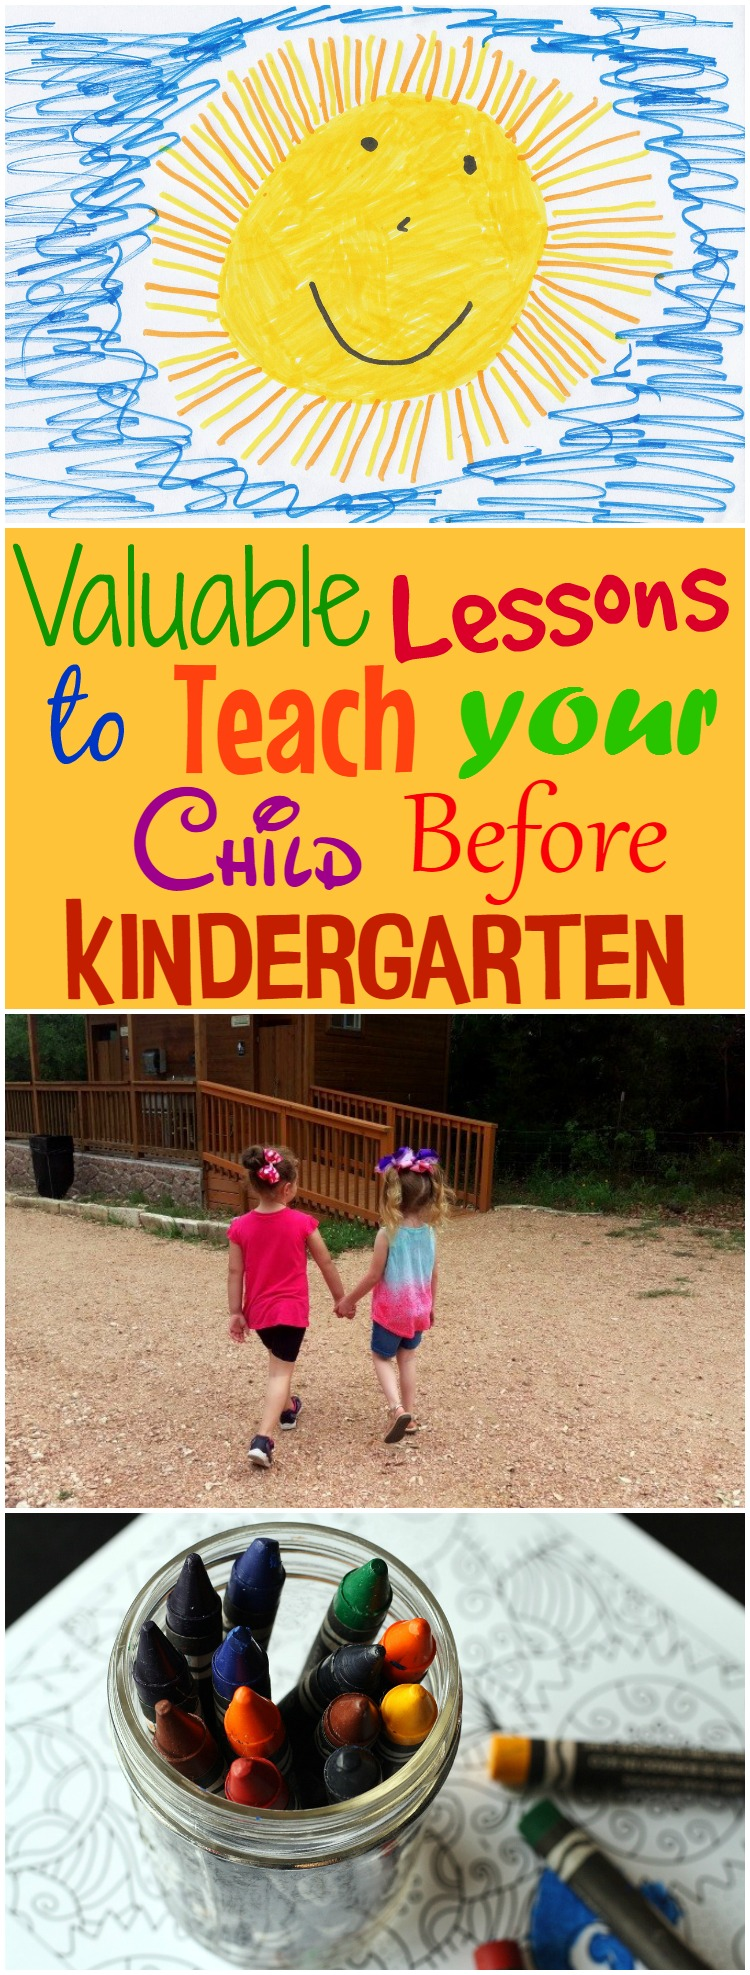 Valuable Lessons to Teach Your Child Before Kindergarten